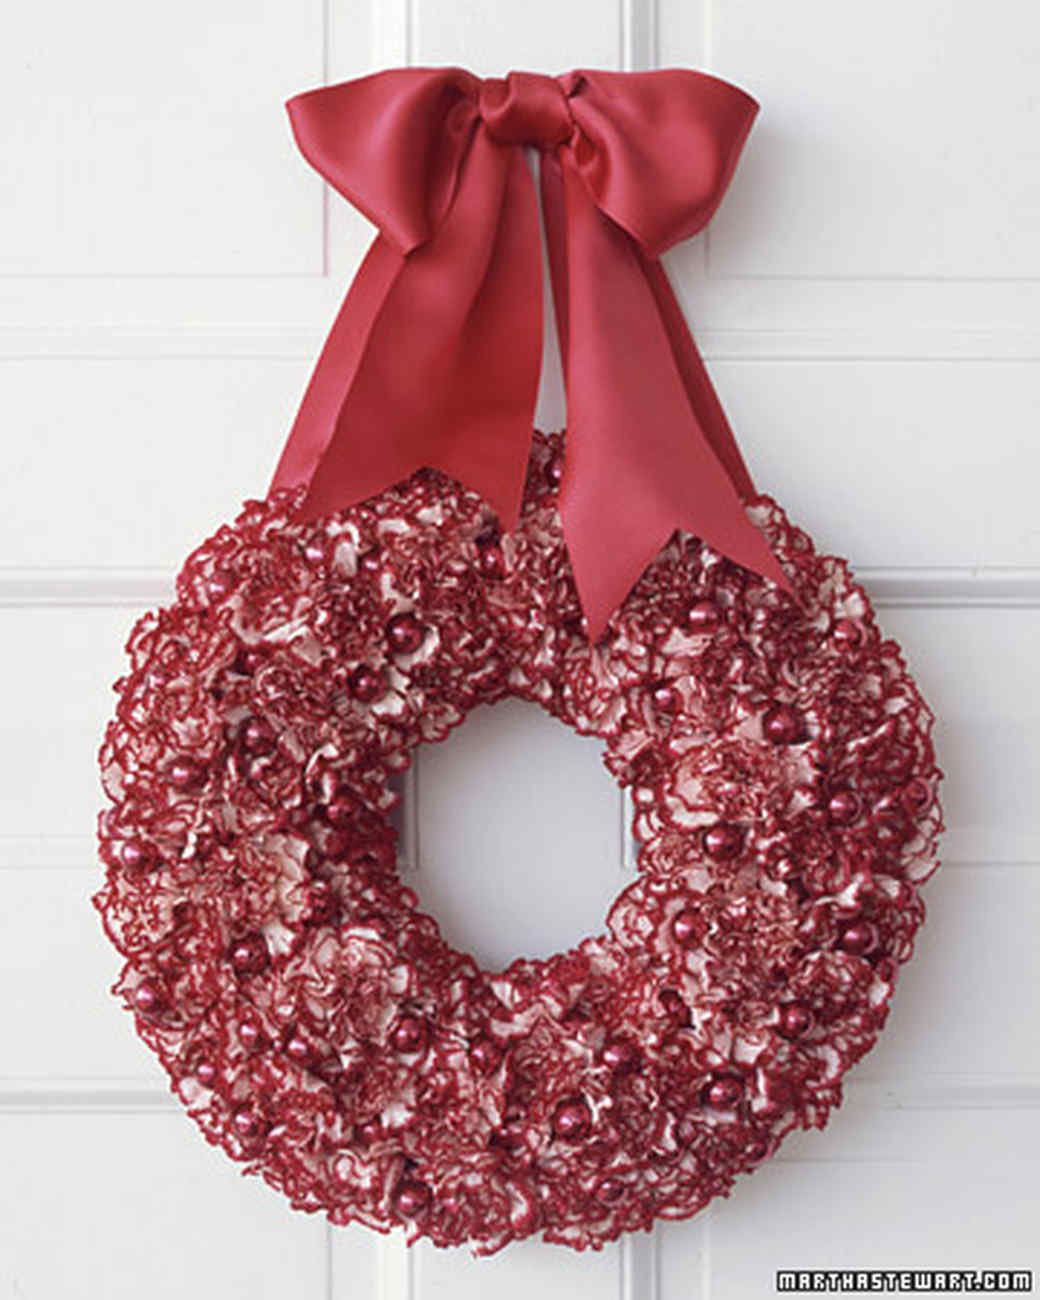 ml101012_1204_wreath.jpg